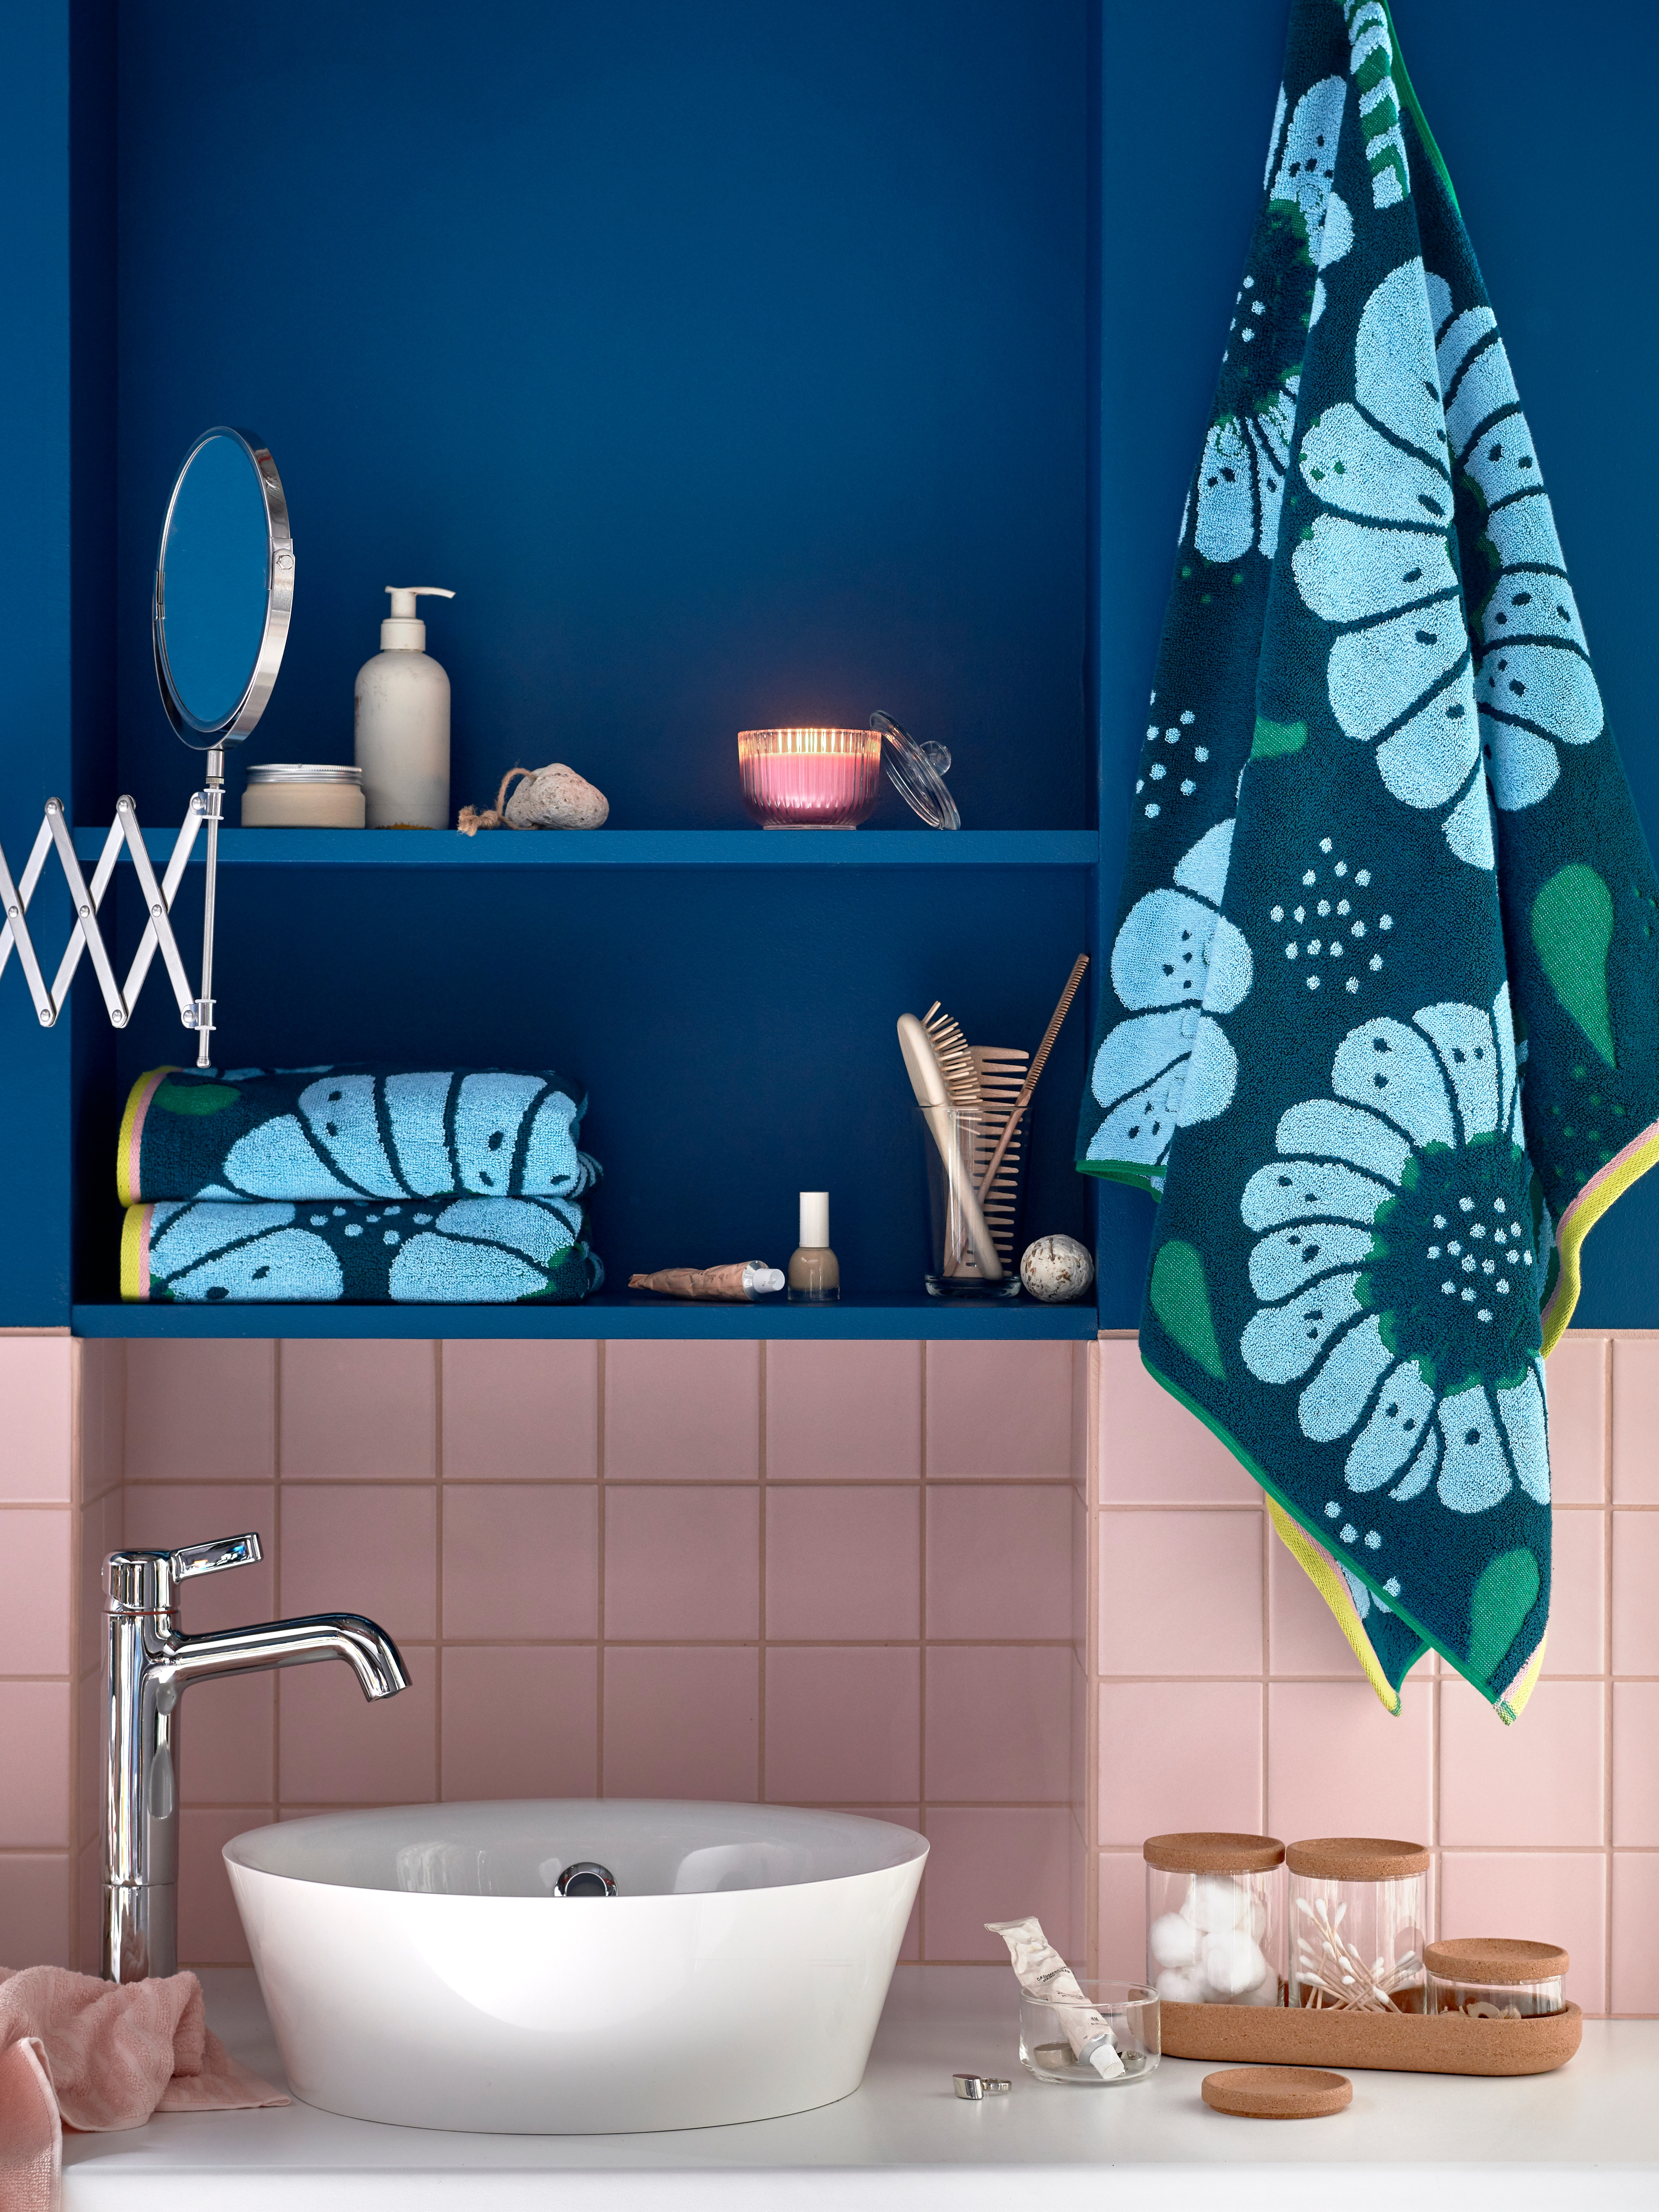 KATTEVIK countertop wash basin sitting atop a white counter below a blue painted wall, and with blue floral print towels.